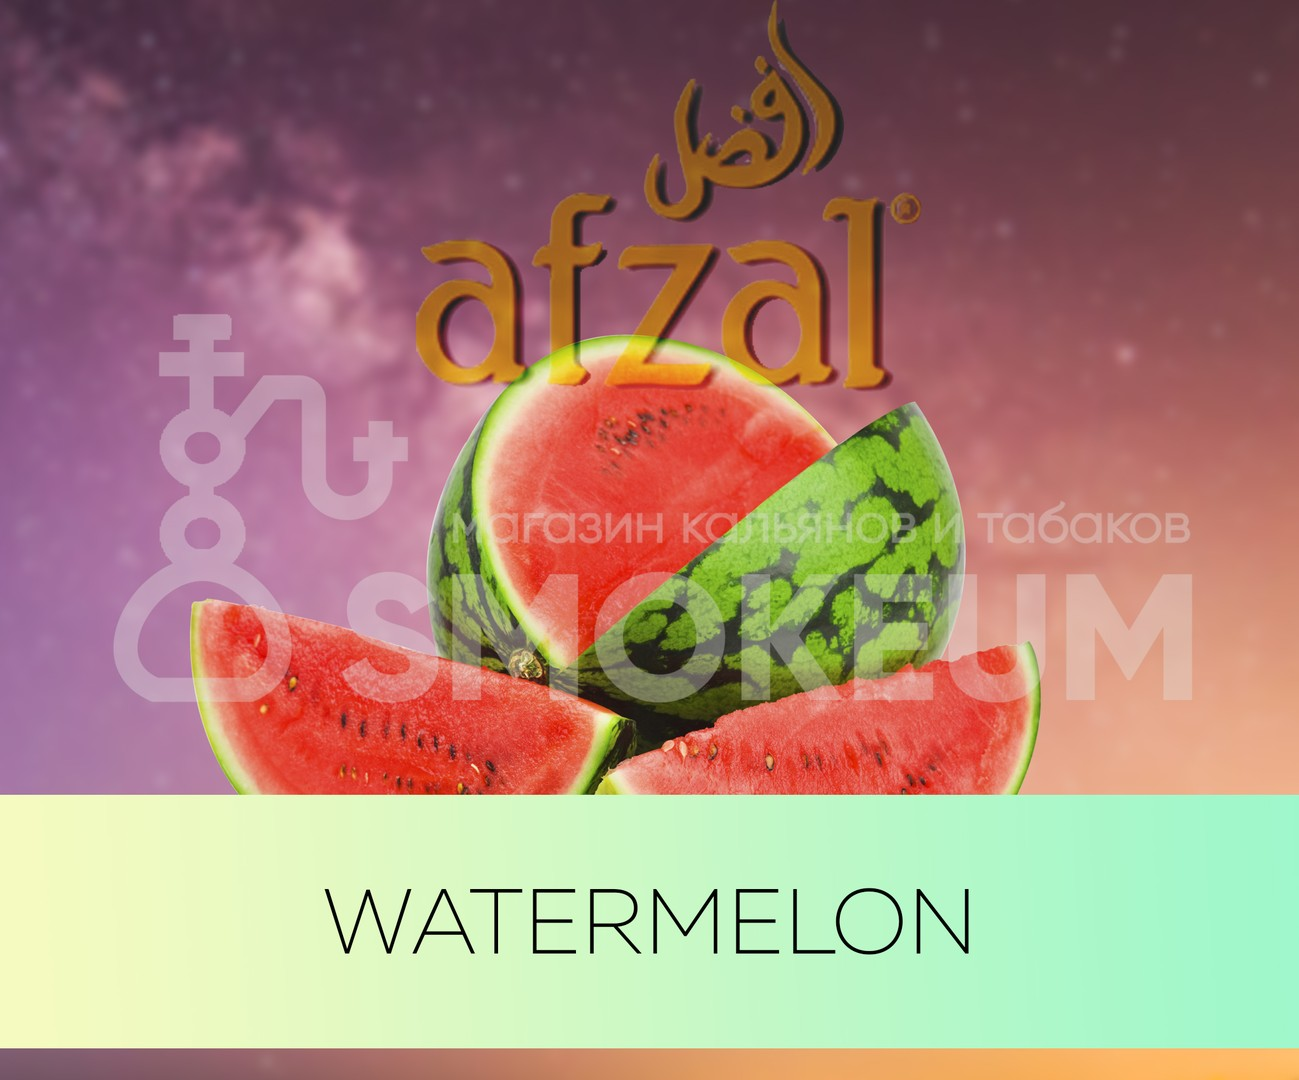 Табак Afzal - Watermelon (Арбуз) 50 гр